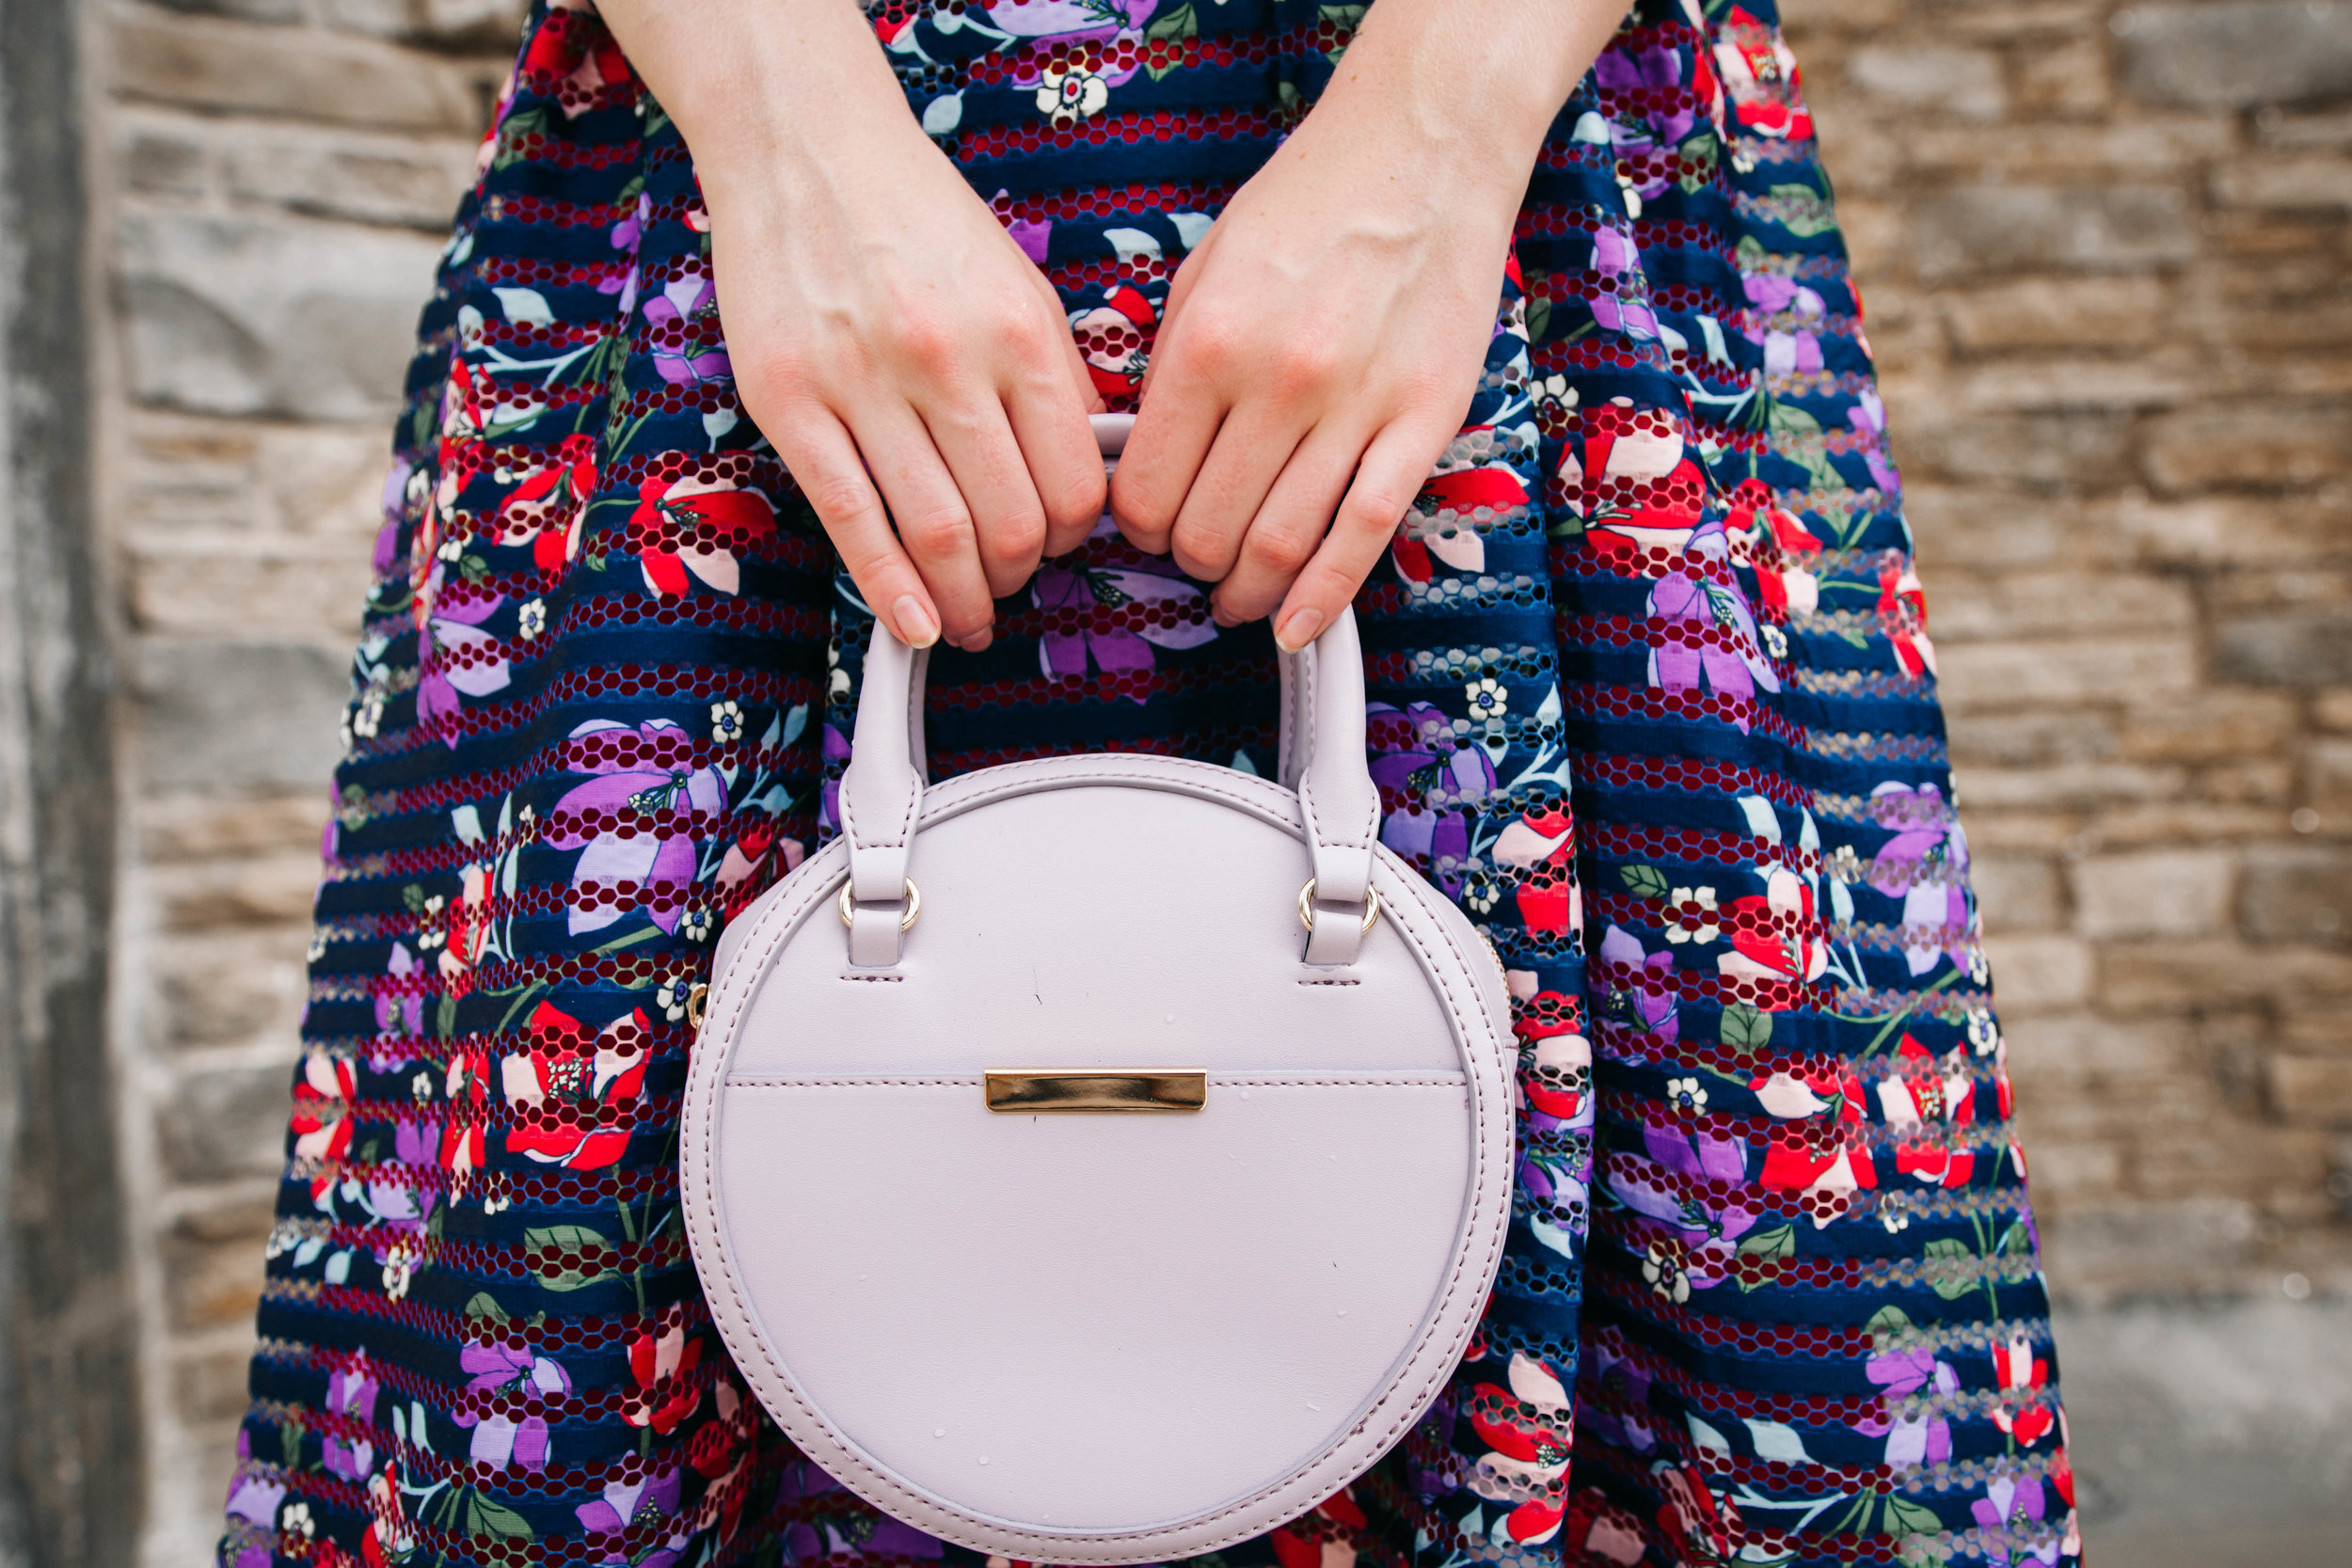 Best dress to wear to a wedding this season and matching lilac handbag